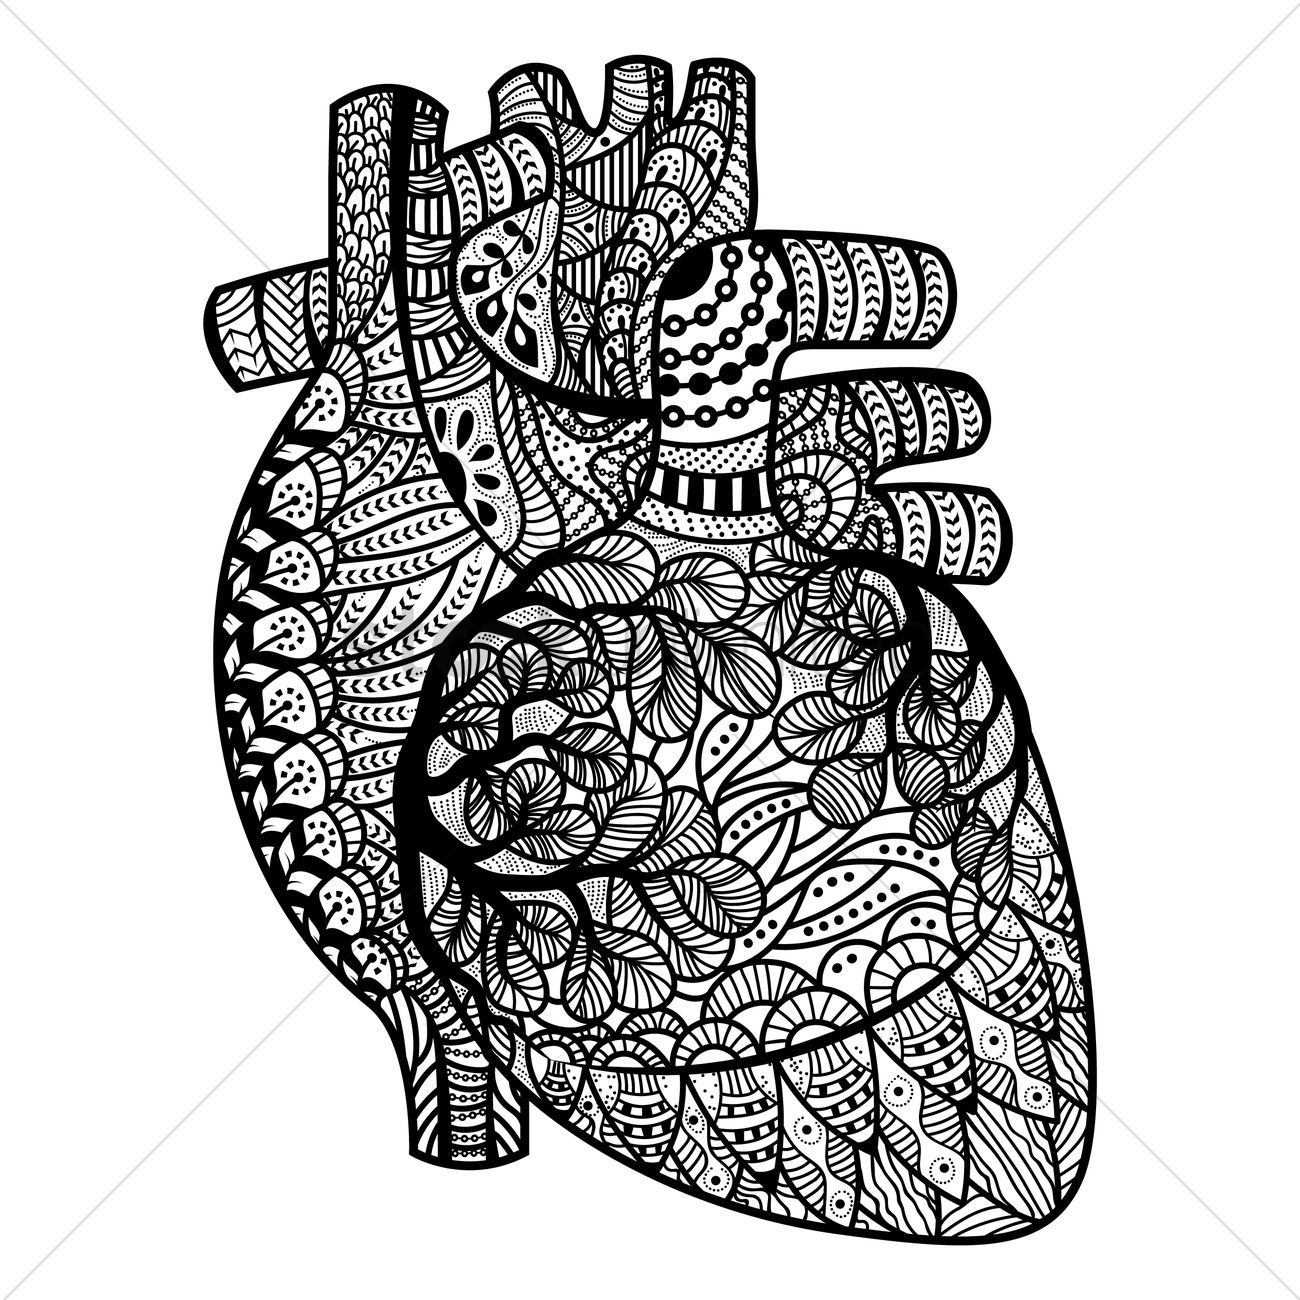 1300x1300 Intricate Human Heart Design Vector Image